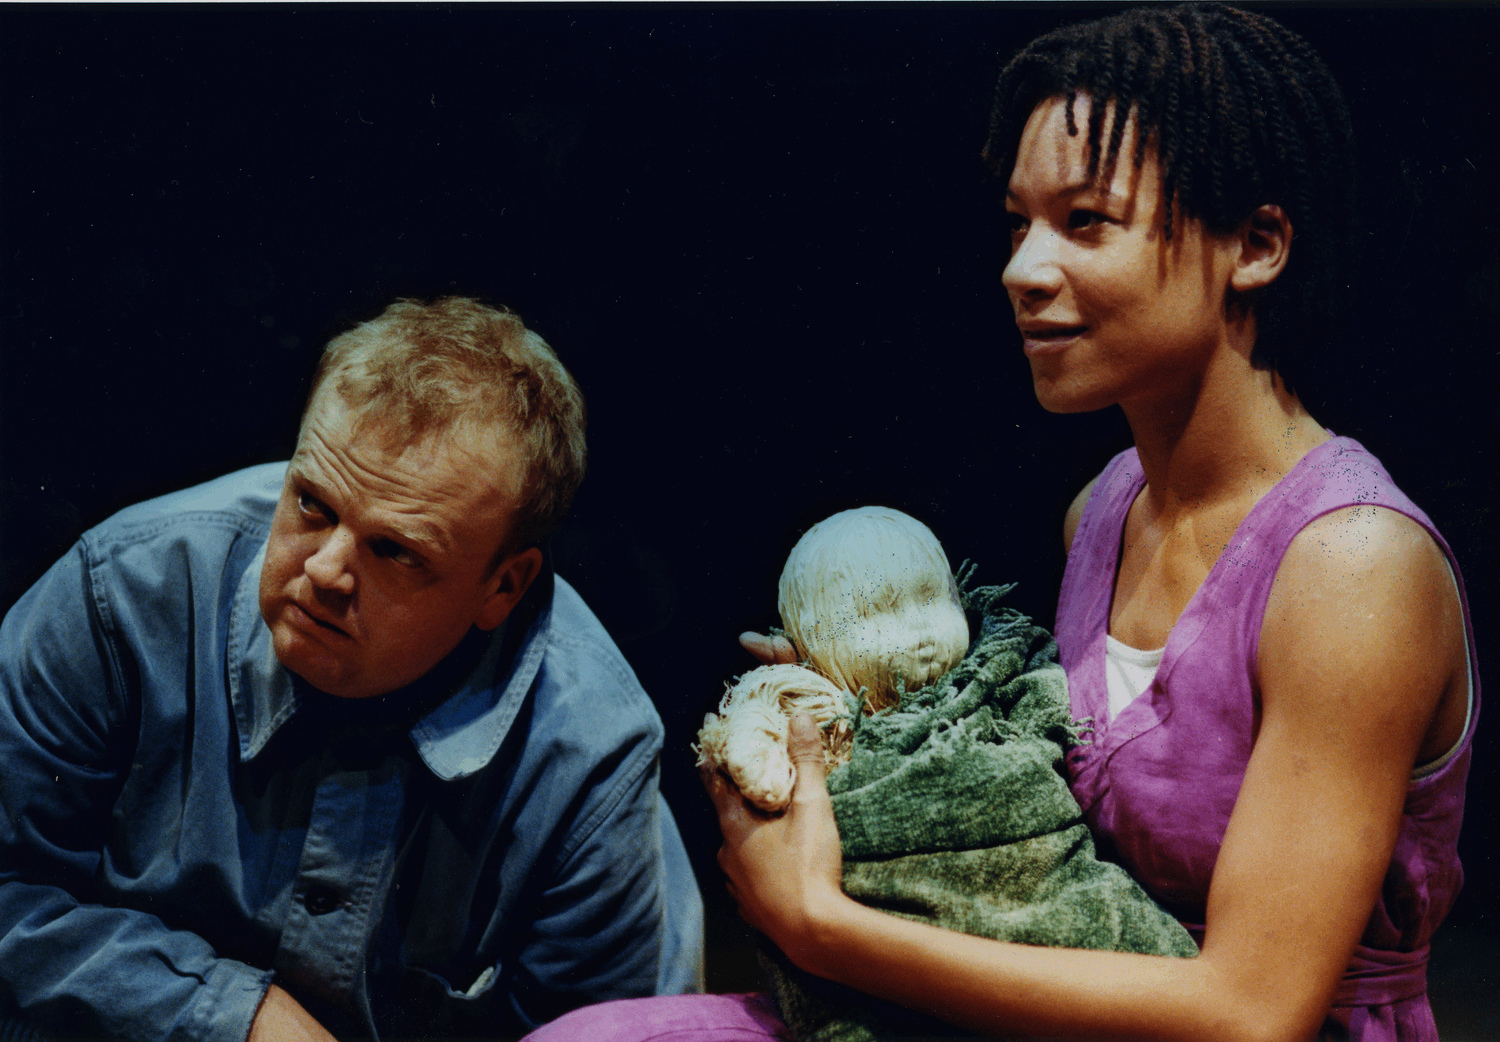 Rehearsal image of actor Toby Jones on the left and actress Nina Sosanya holding a wooden baby puppet